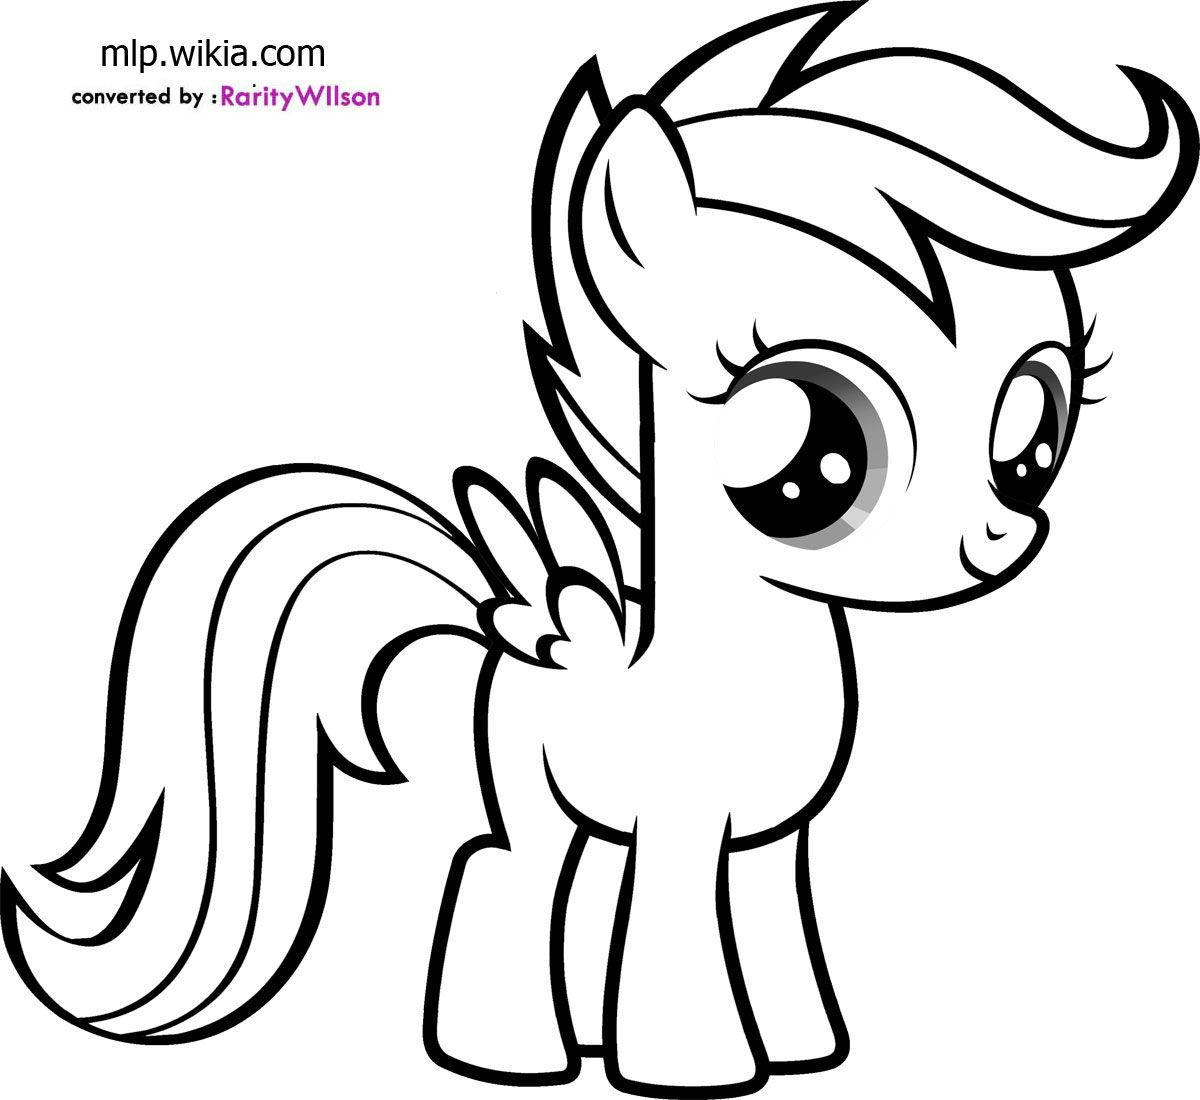 scootaloo my little pony printables coloring pages | Projects to ...